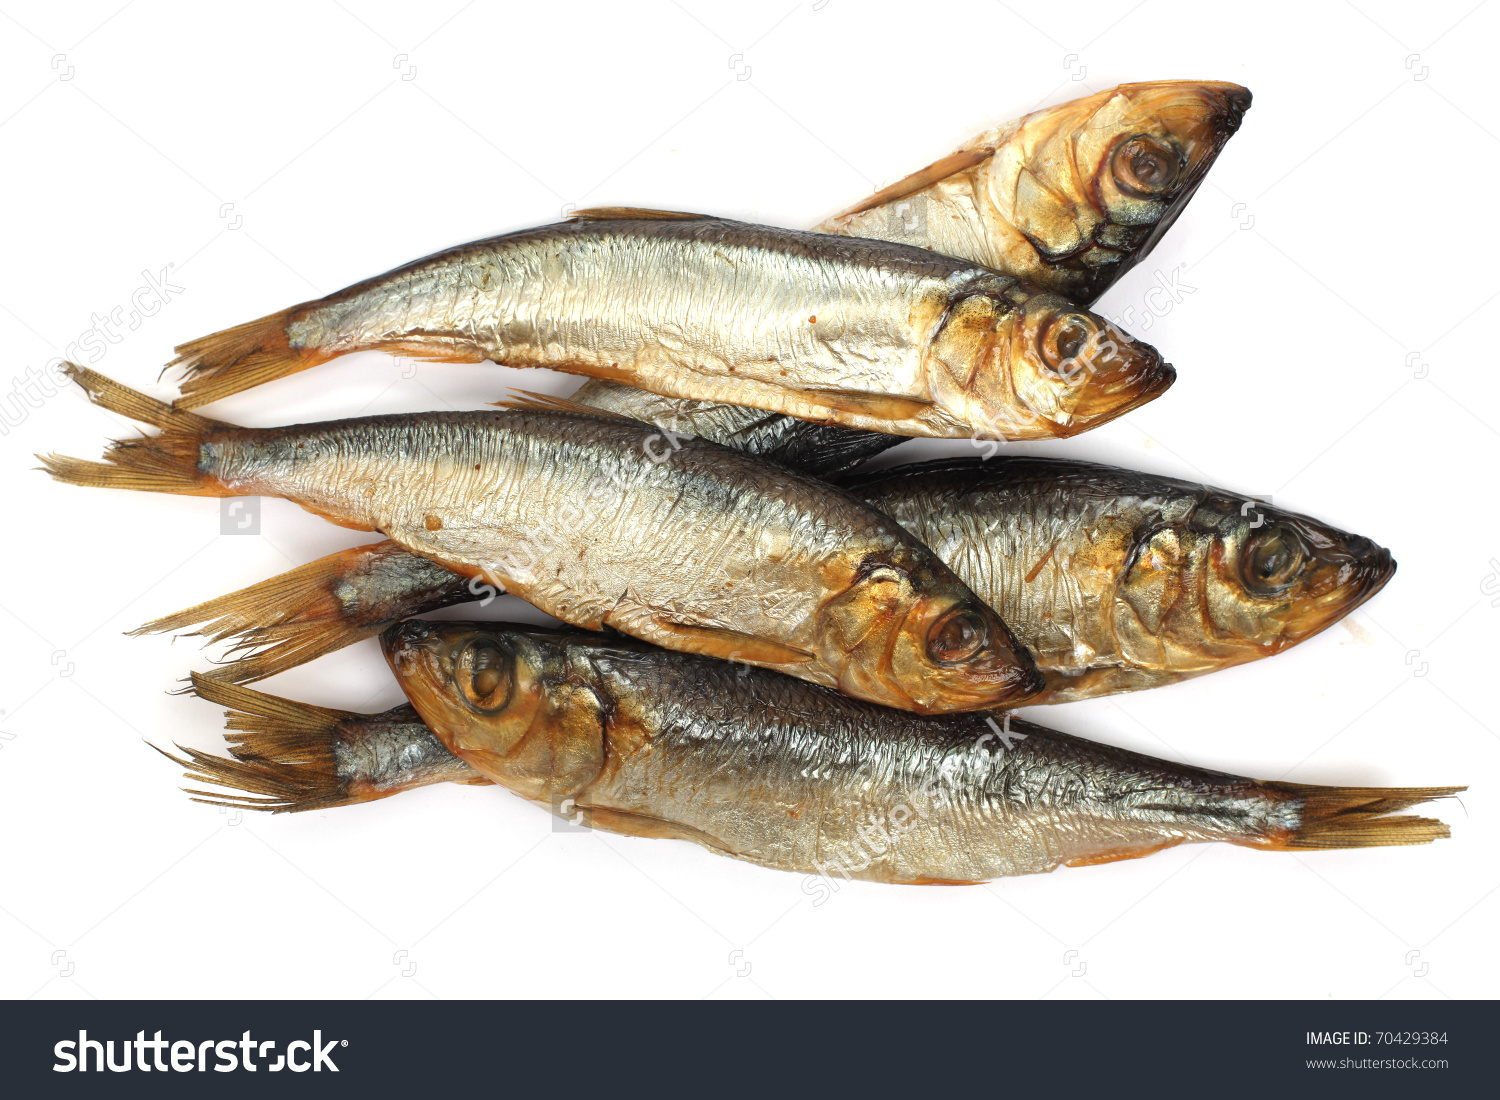 Dried fish clipart clipground for Dried salted fish